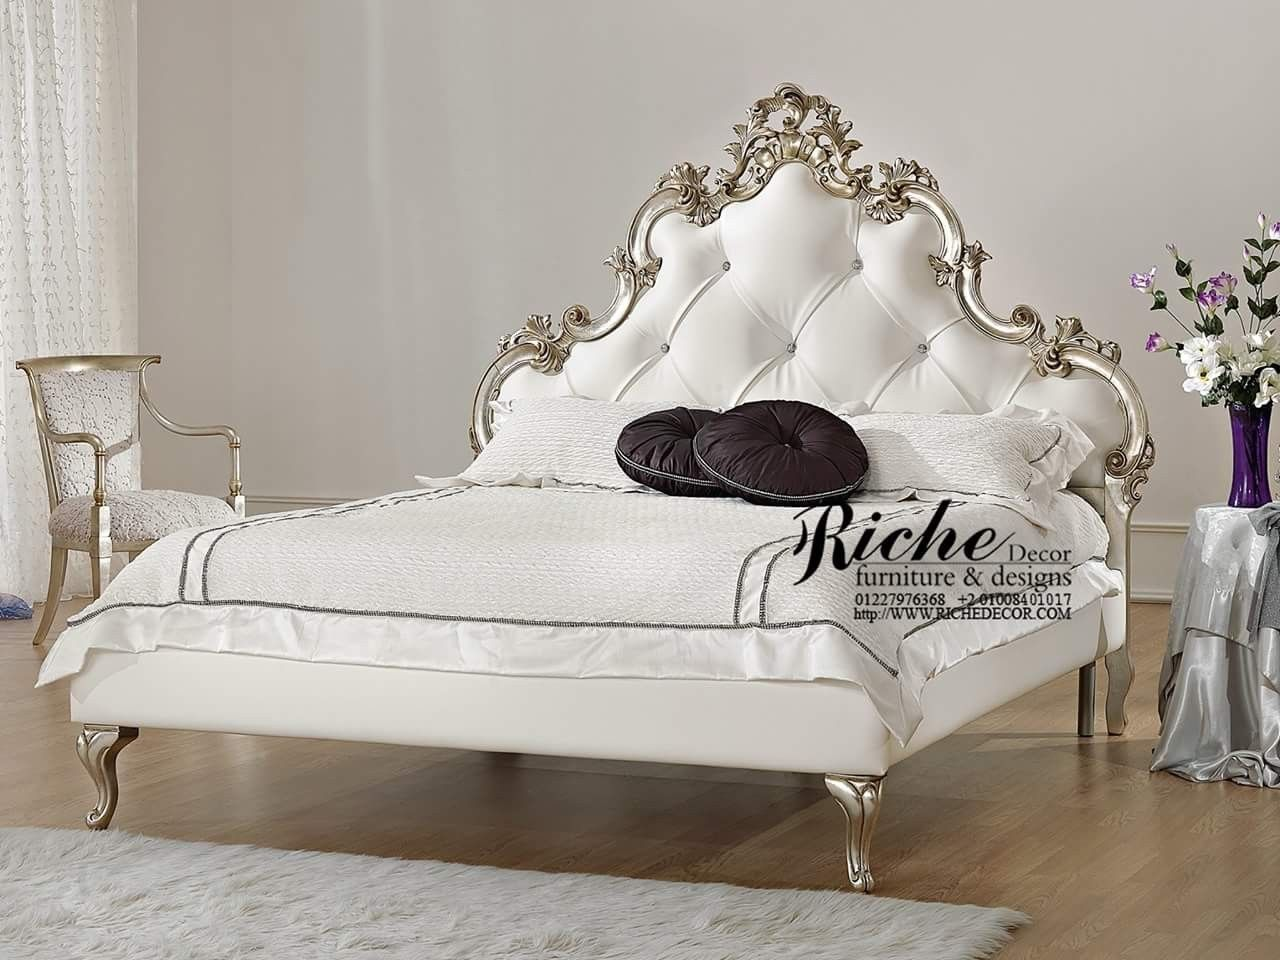 Pin By Sandieliot On Sectional Sofa Bed Linens Luxury Classic Bedroom Luxury Bedding Sets